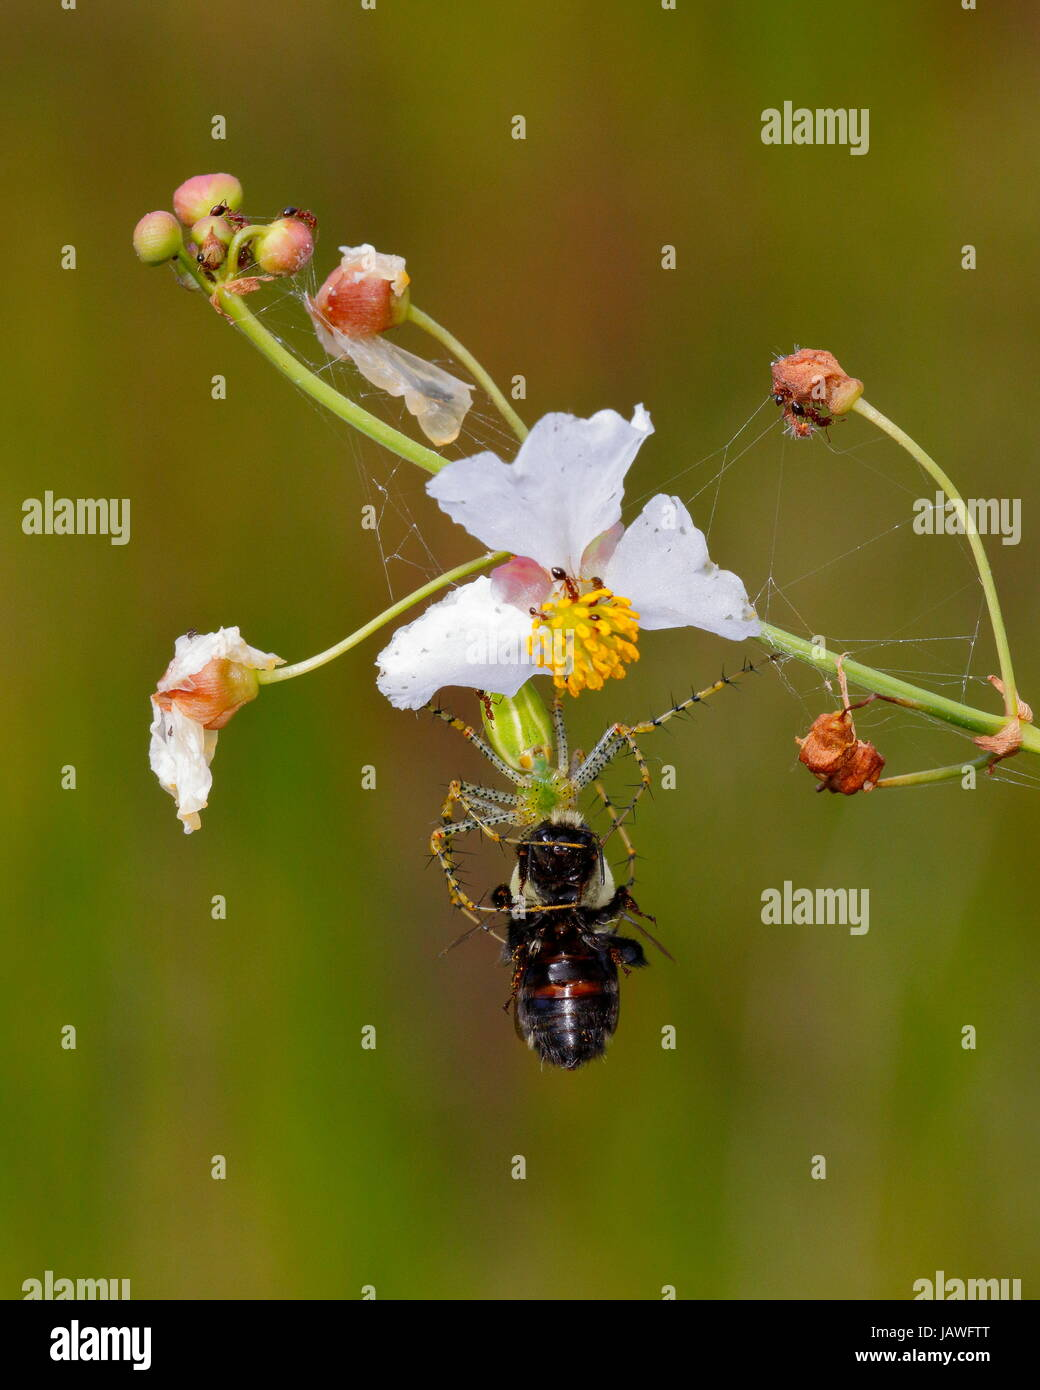 A green lynx spider, Peucetia viridans, preying on a bee. - Stock Image